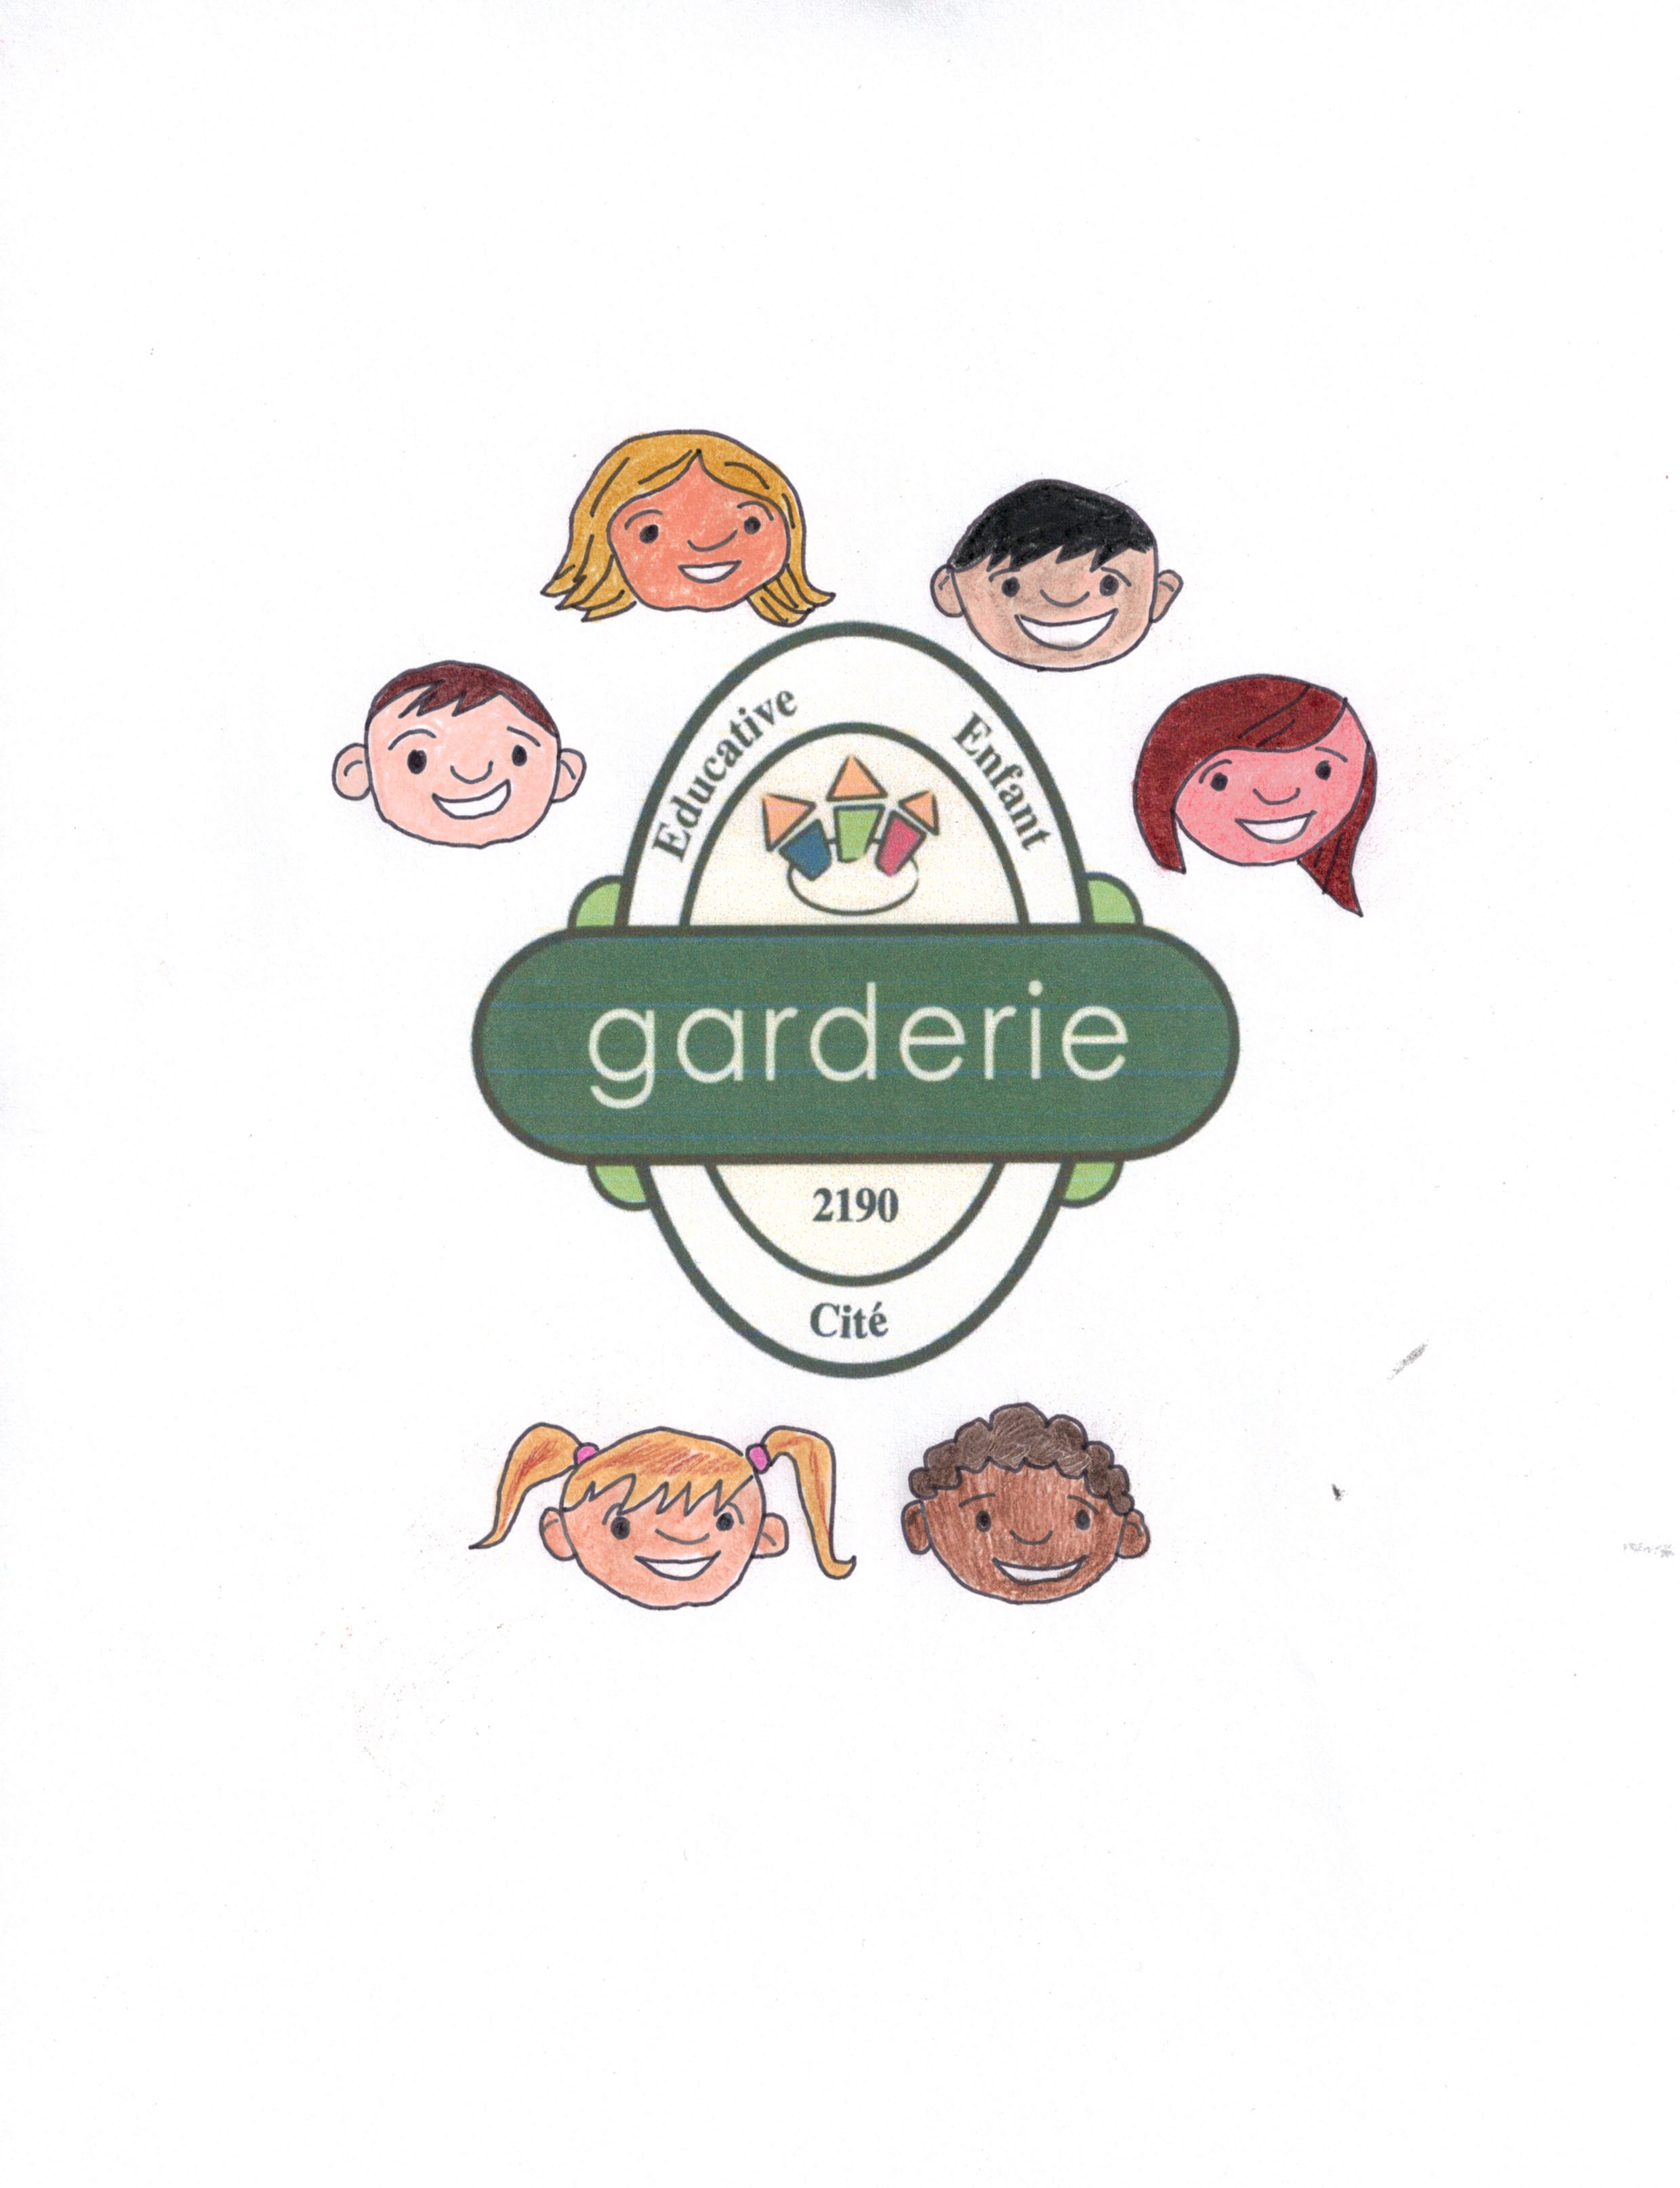 Comité de parents Garderie Enfant cité